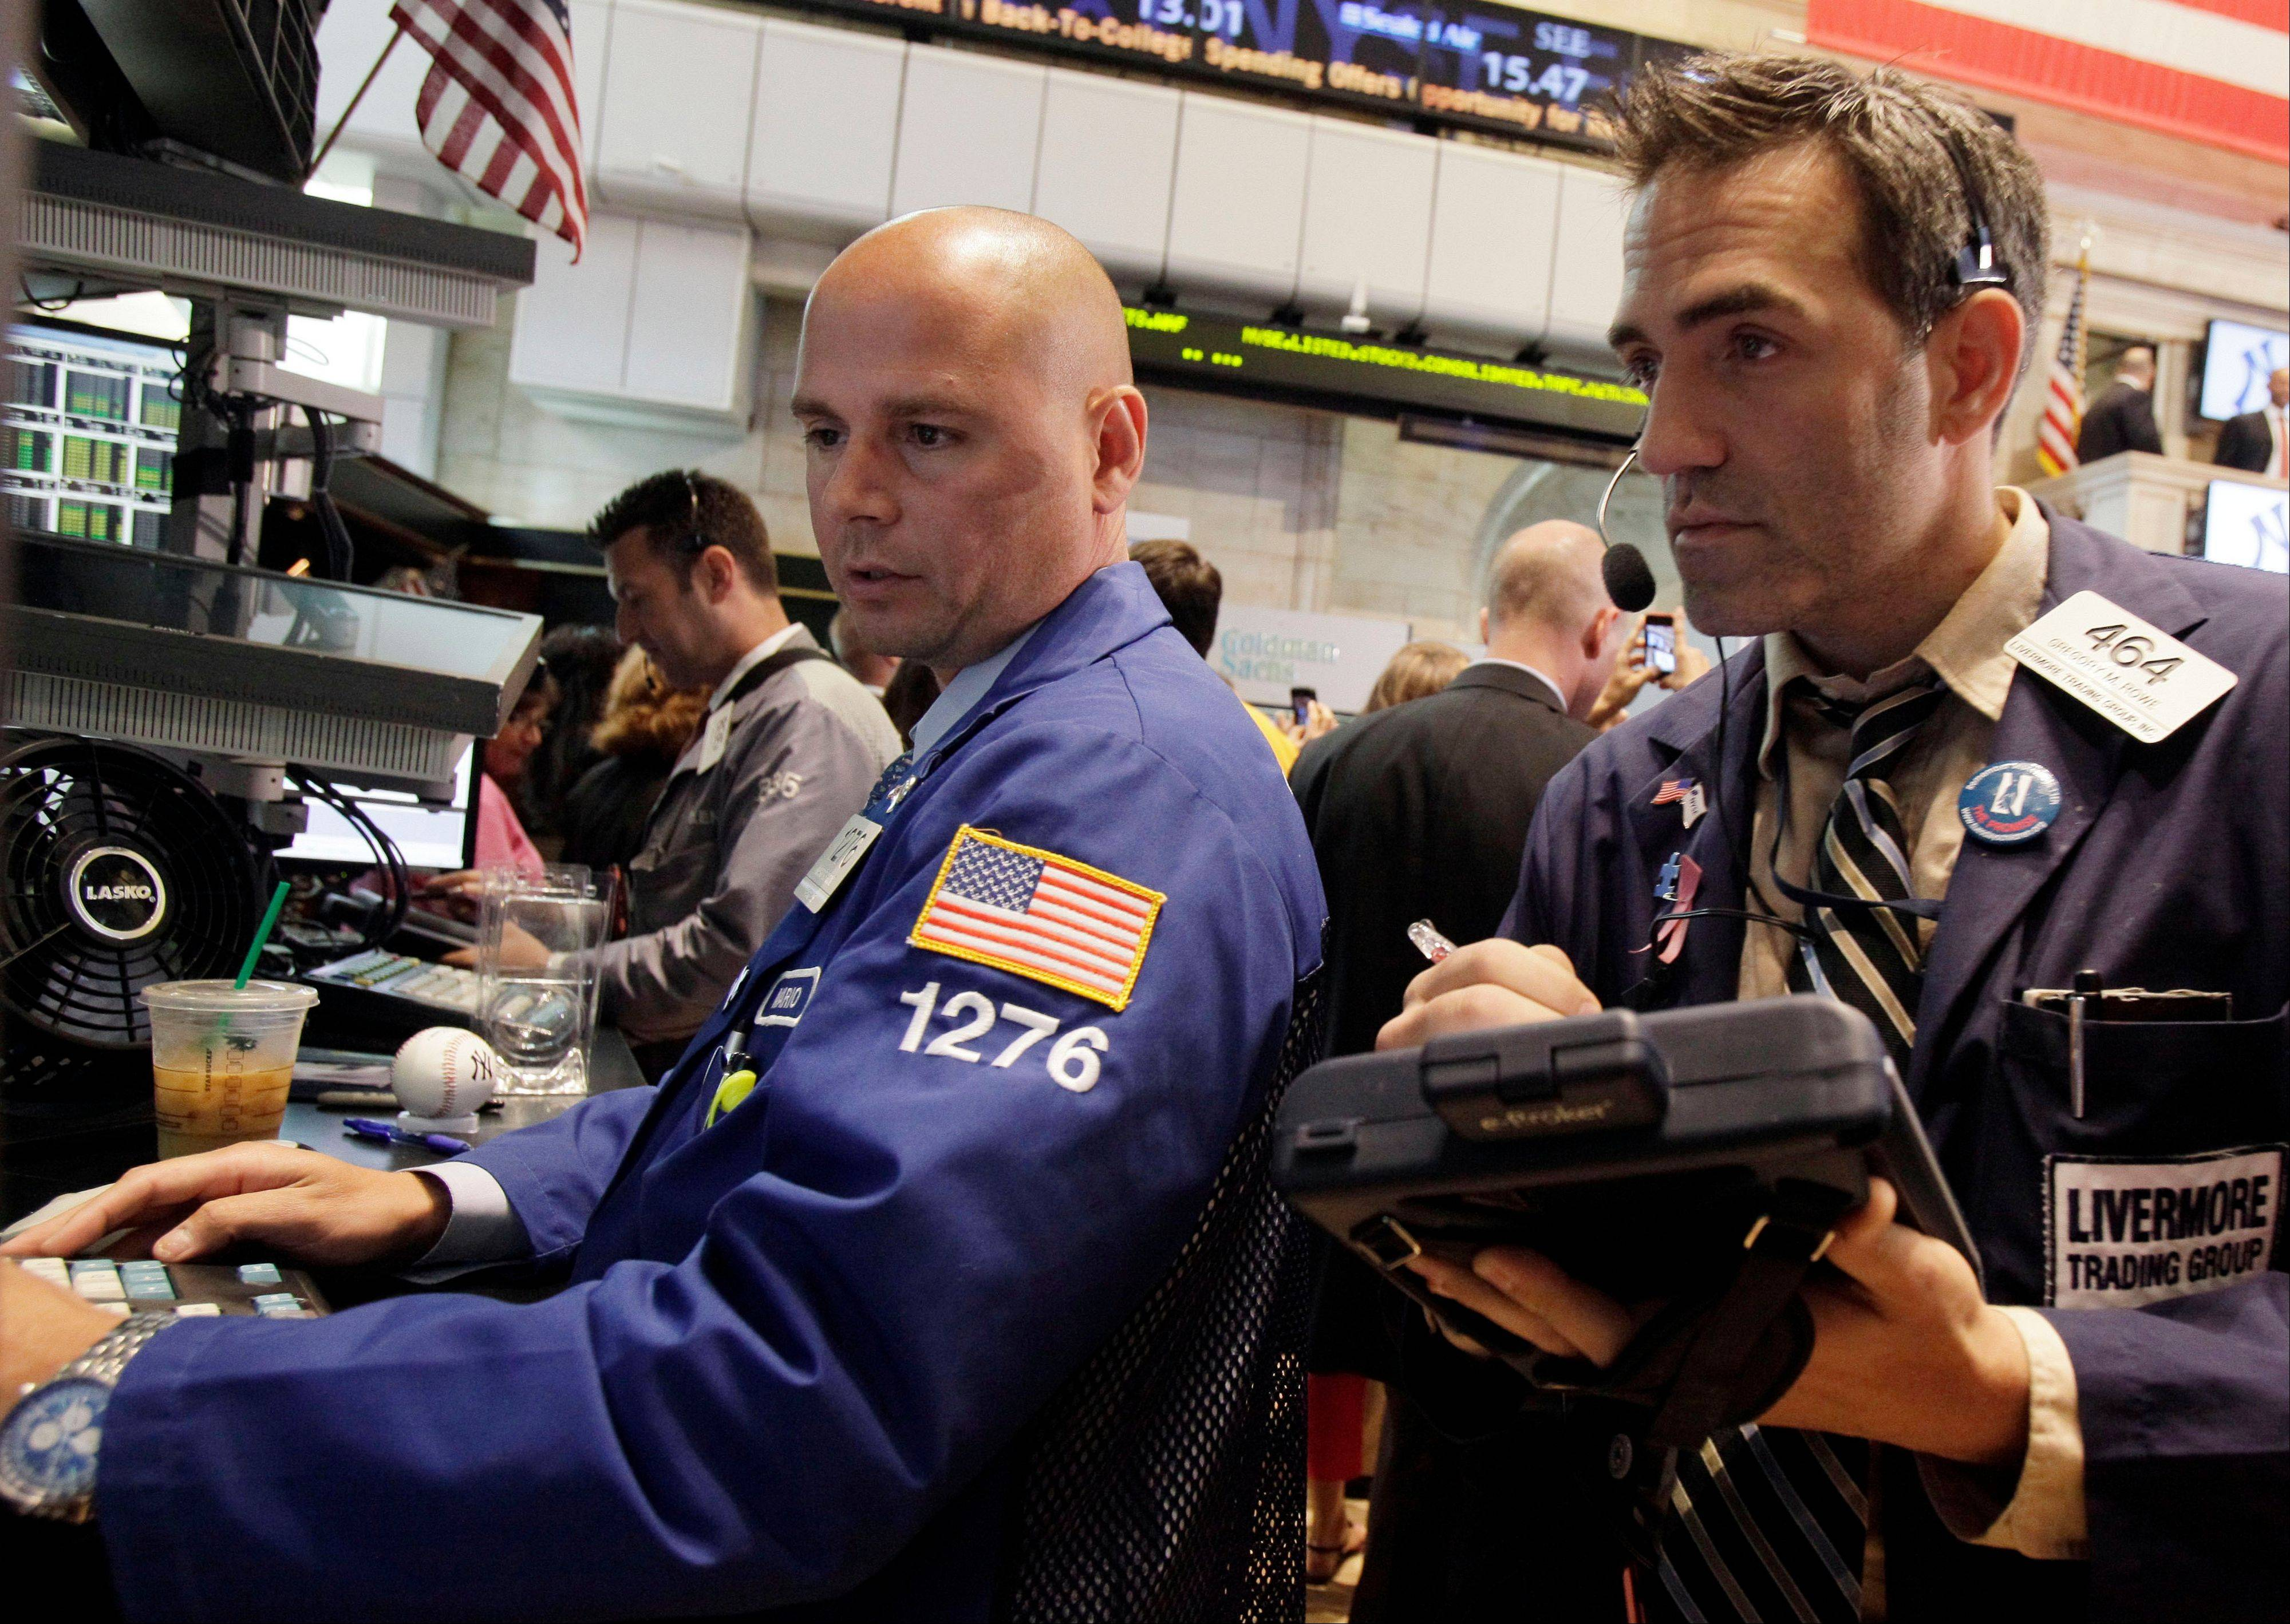 Specialist Mario Picone, left, and trader Gregory Rowe work on the floor of the New York Stock Exchange Wednesday, July 18, 2012. U.S. Stocks rose in early trading Wednesday as investors weighed new signs of a housing rebound against weak earnings reports from several big companies.